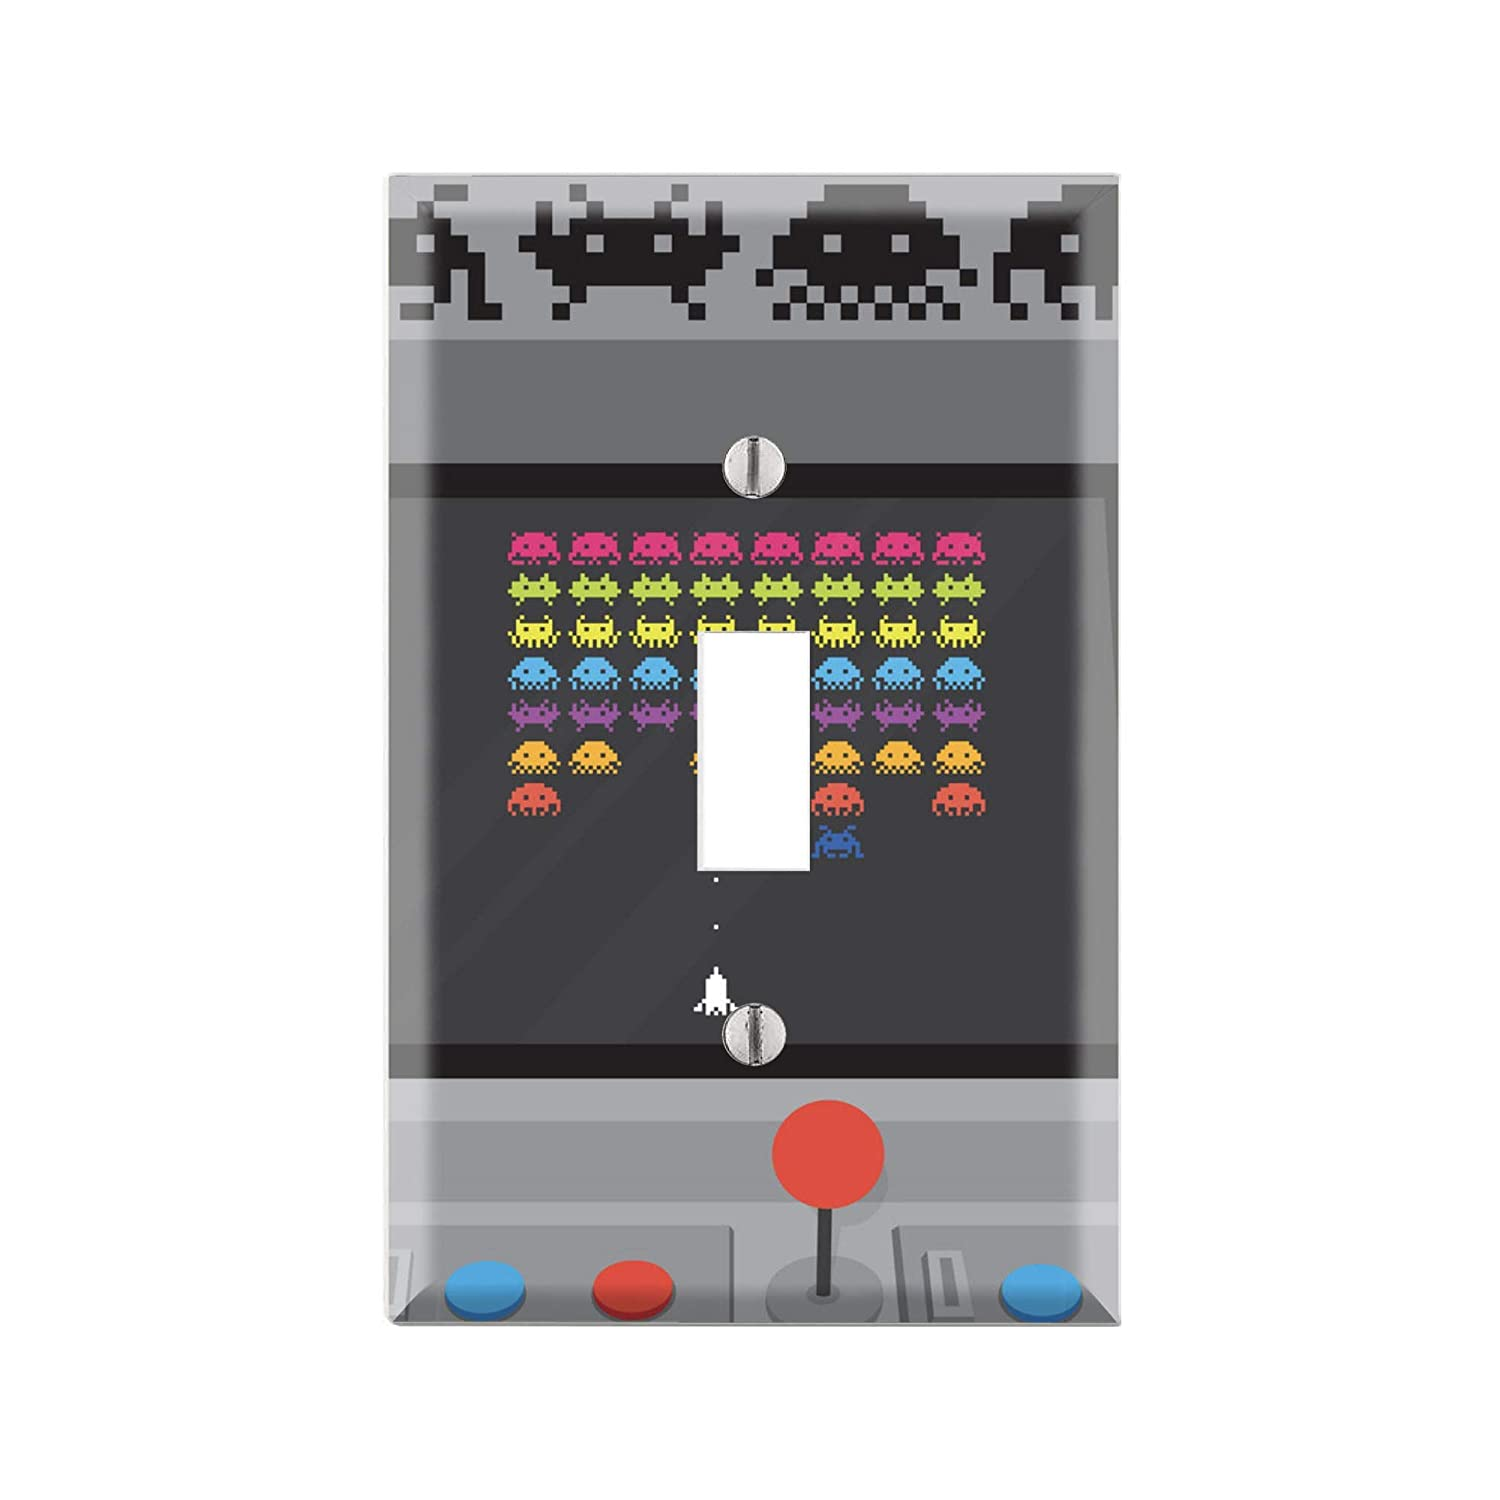 Classic Video Game Graphics Wallplate Gift for Gamer Space Invader Art TF81 Space Invader Light Switch Cover Outlet Cover Retro Video Game Decor Single Toggle Outlet Cover Single Rocker